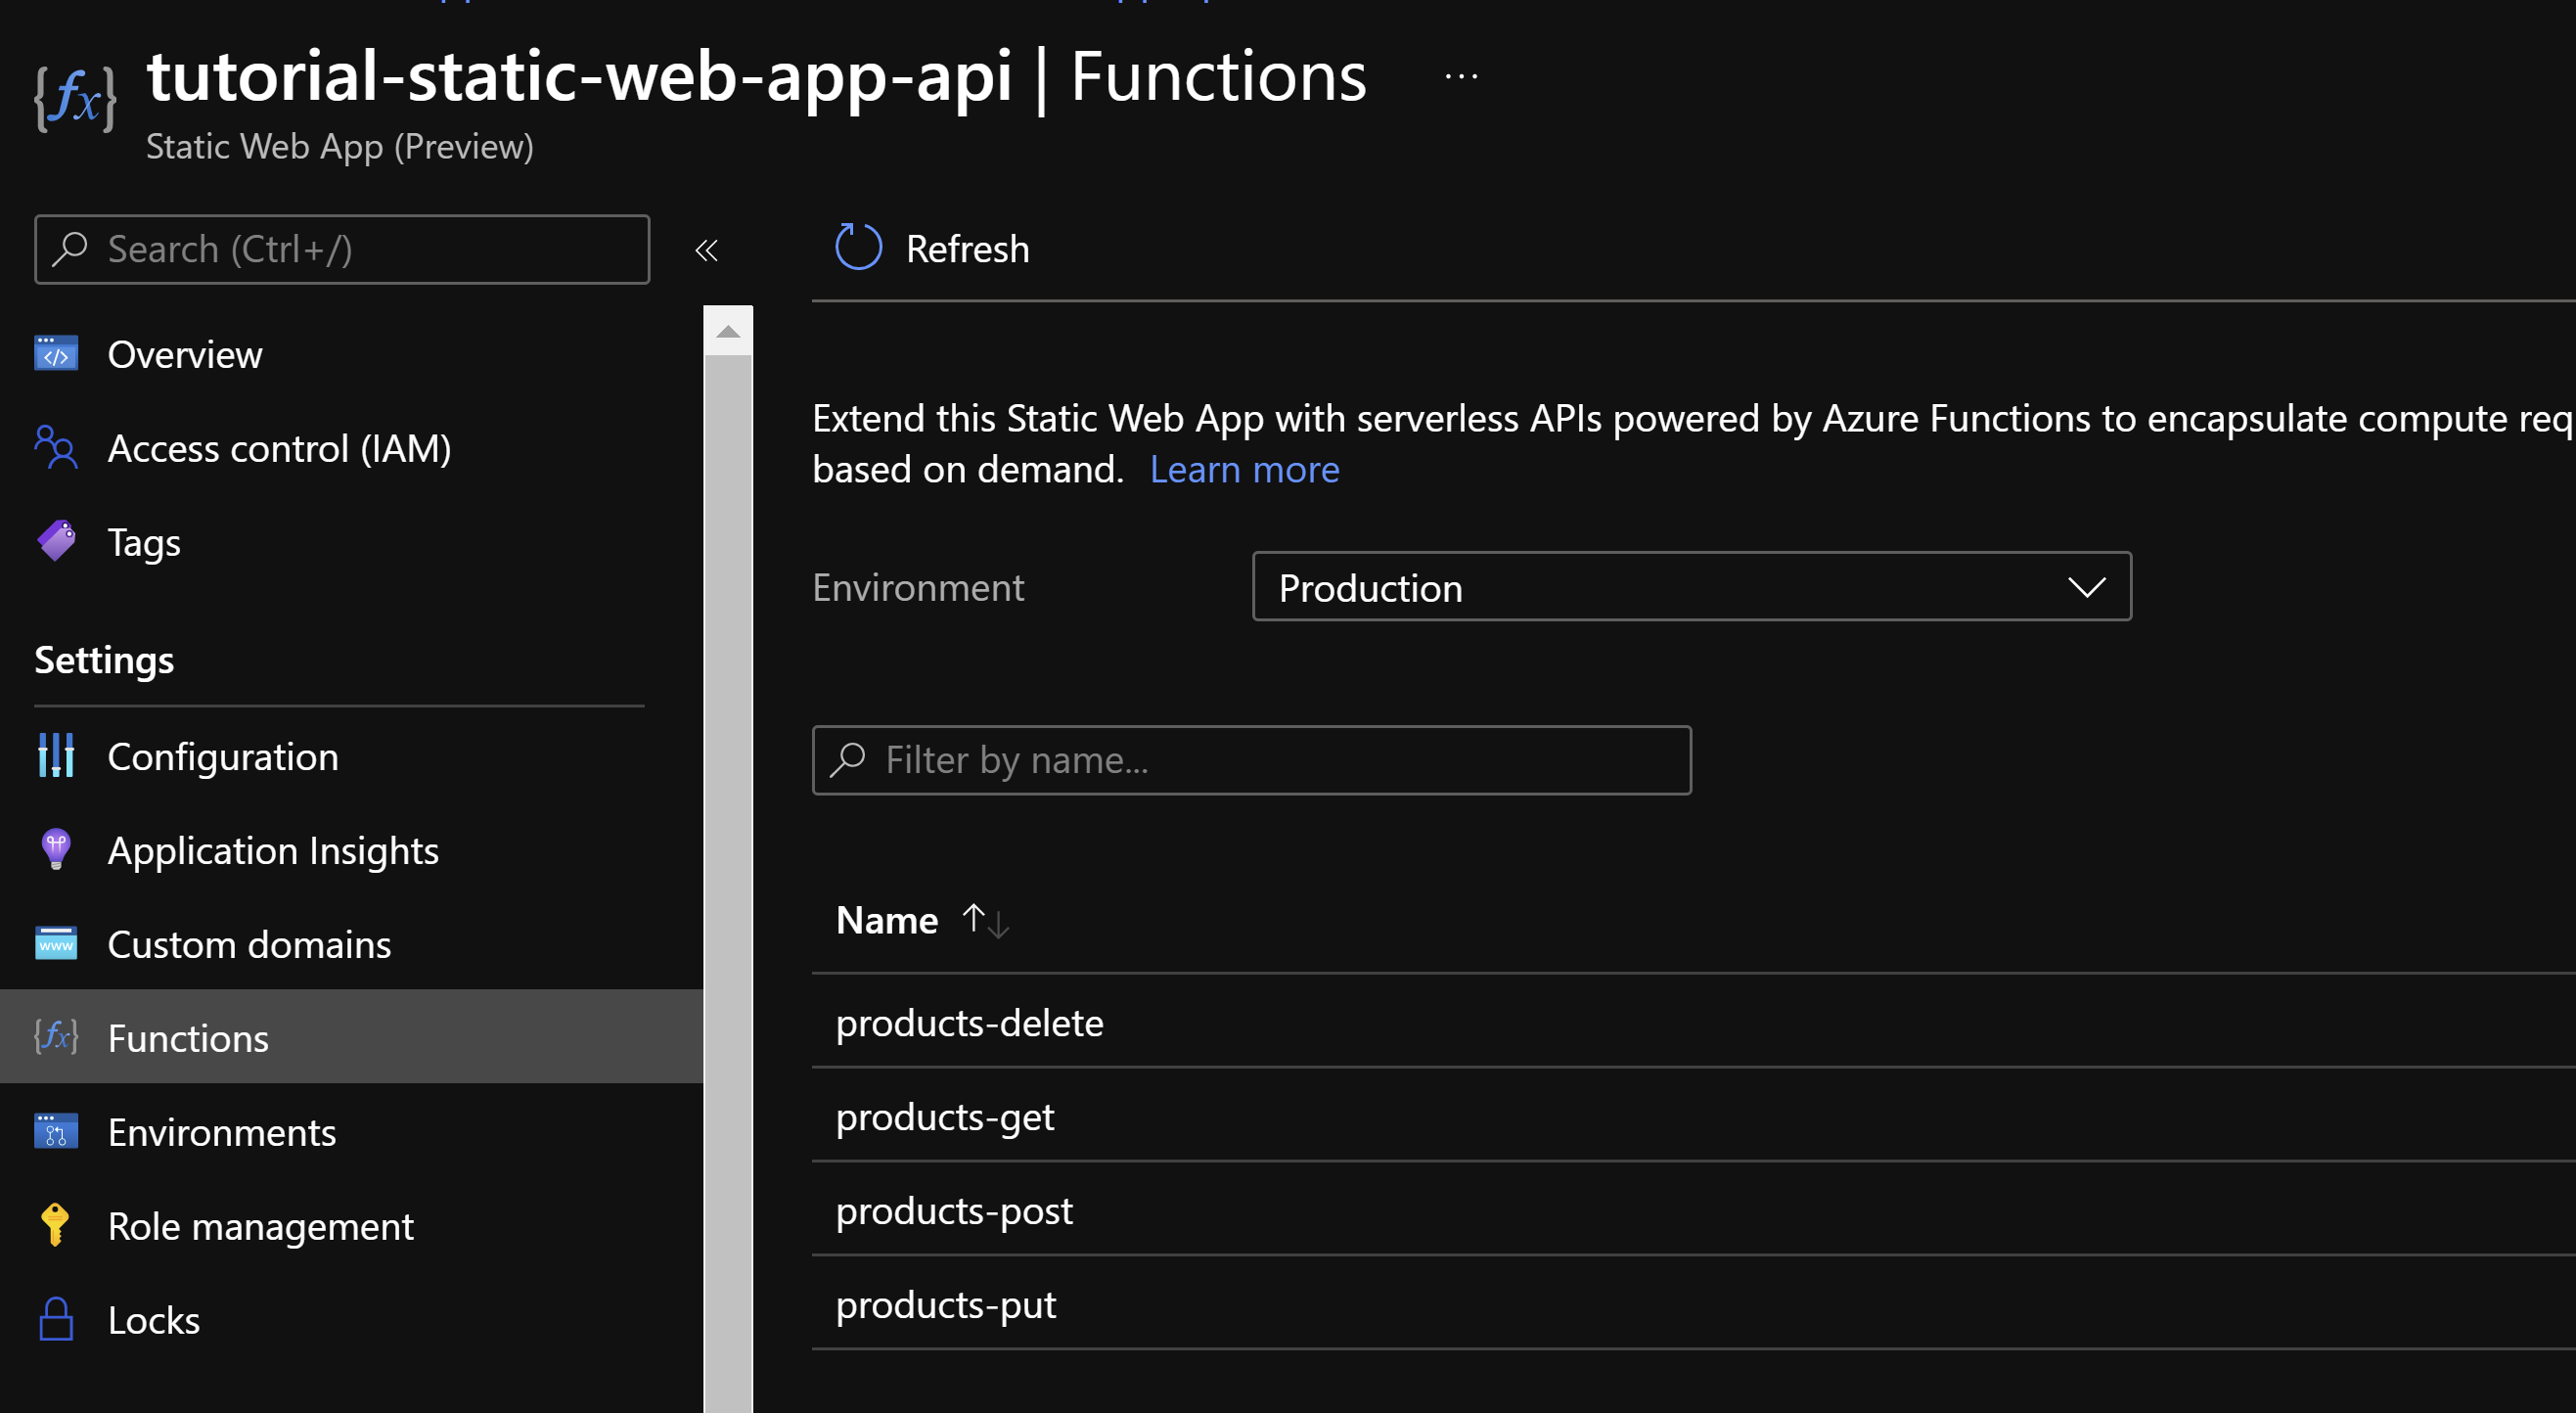 Screenshot of Functions tab selected in the Static Web App created in the Tutorial (sample name: tutorial-static-web-app-api). Displays the 4 function apps deployed in the Static Web App (products-delete, products-get, products-post, products-put).